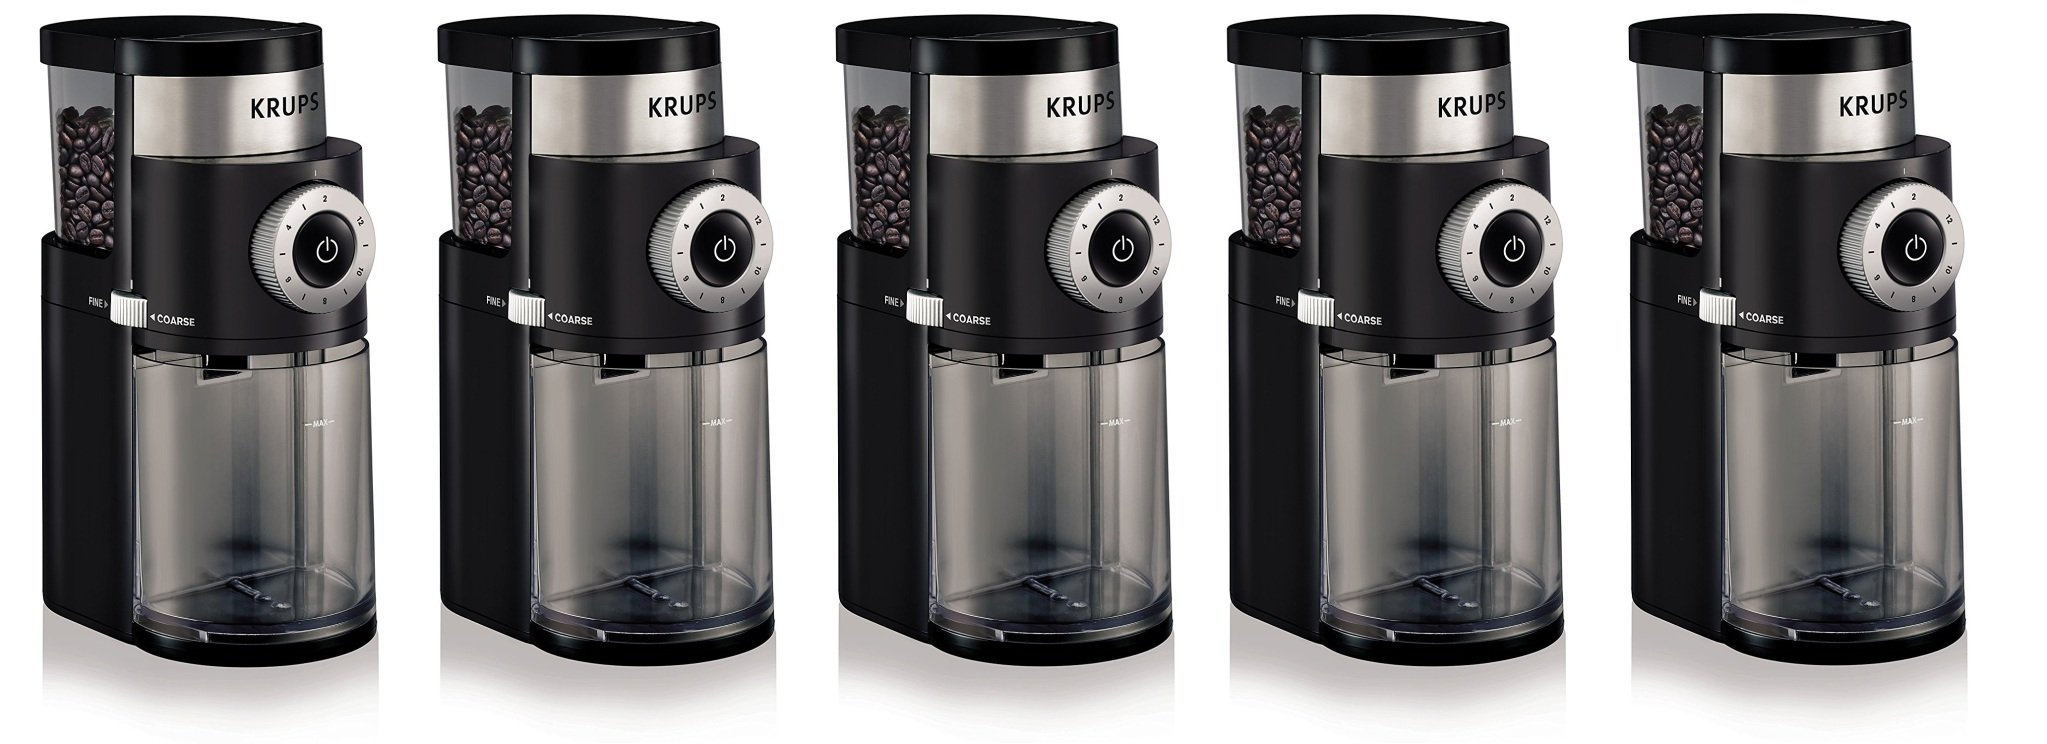 KRUPS GX5000 Professional Electric Coffee hGqrUc Burr Grinder with Grind Size and Cup Selection, 7-Ounce, Black, Burr Grinder (Pack of 5)